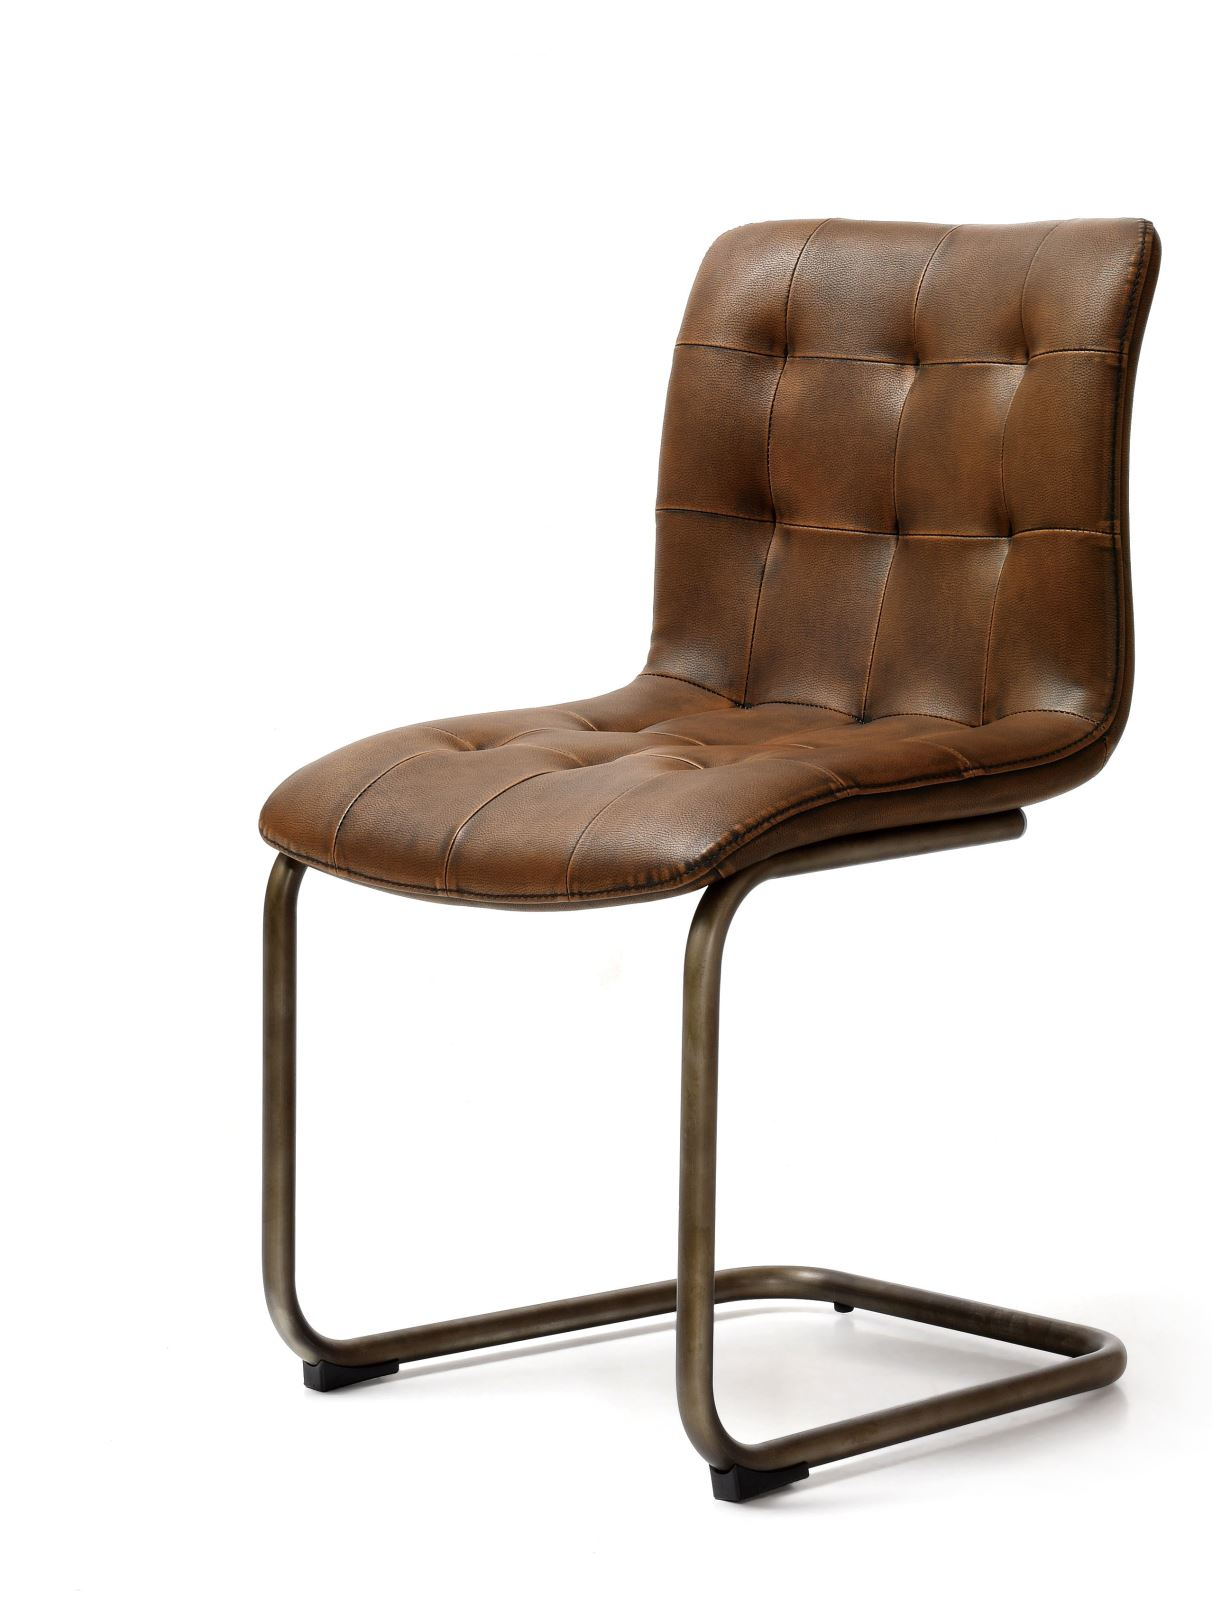 Classic furniture industrial dining chair retro curve for Classic furniture